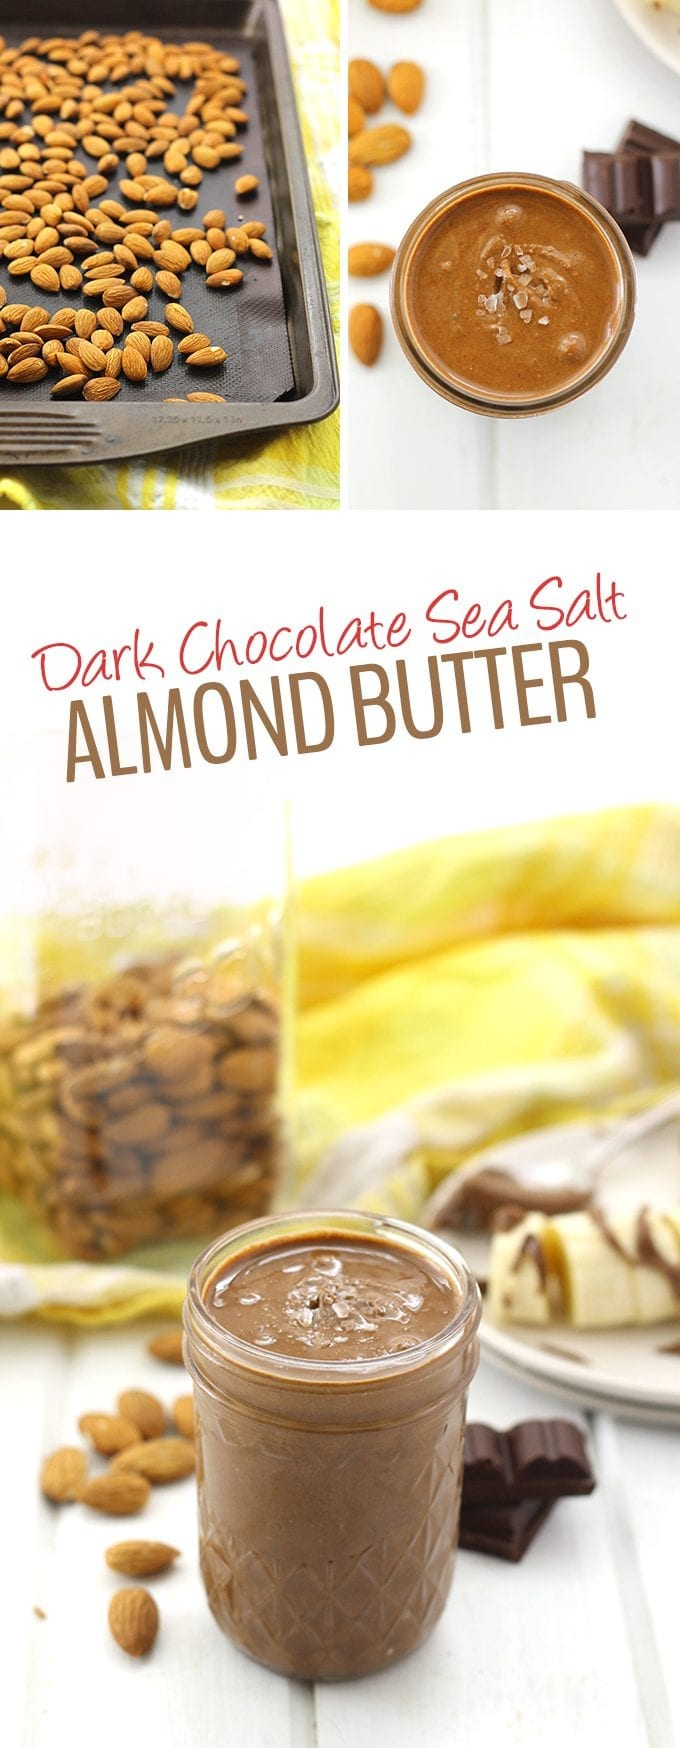 Homemade almond butter is easier than you think! Make this Dark Chocolate Sea Salt Almond Butter recipe in your blender or food processor in under 20 minutes with just 4 ingredients!